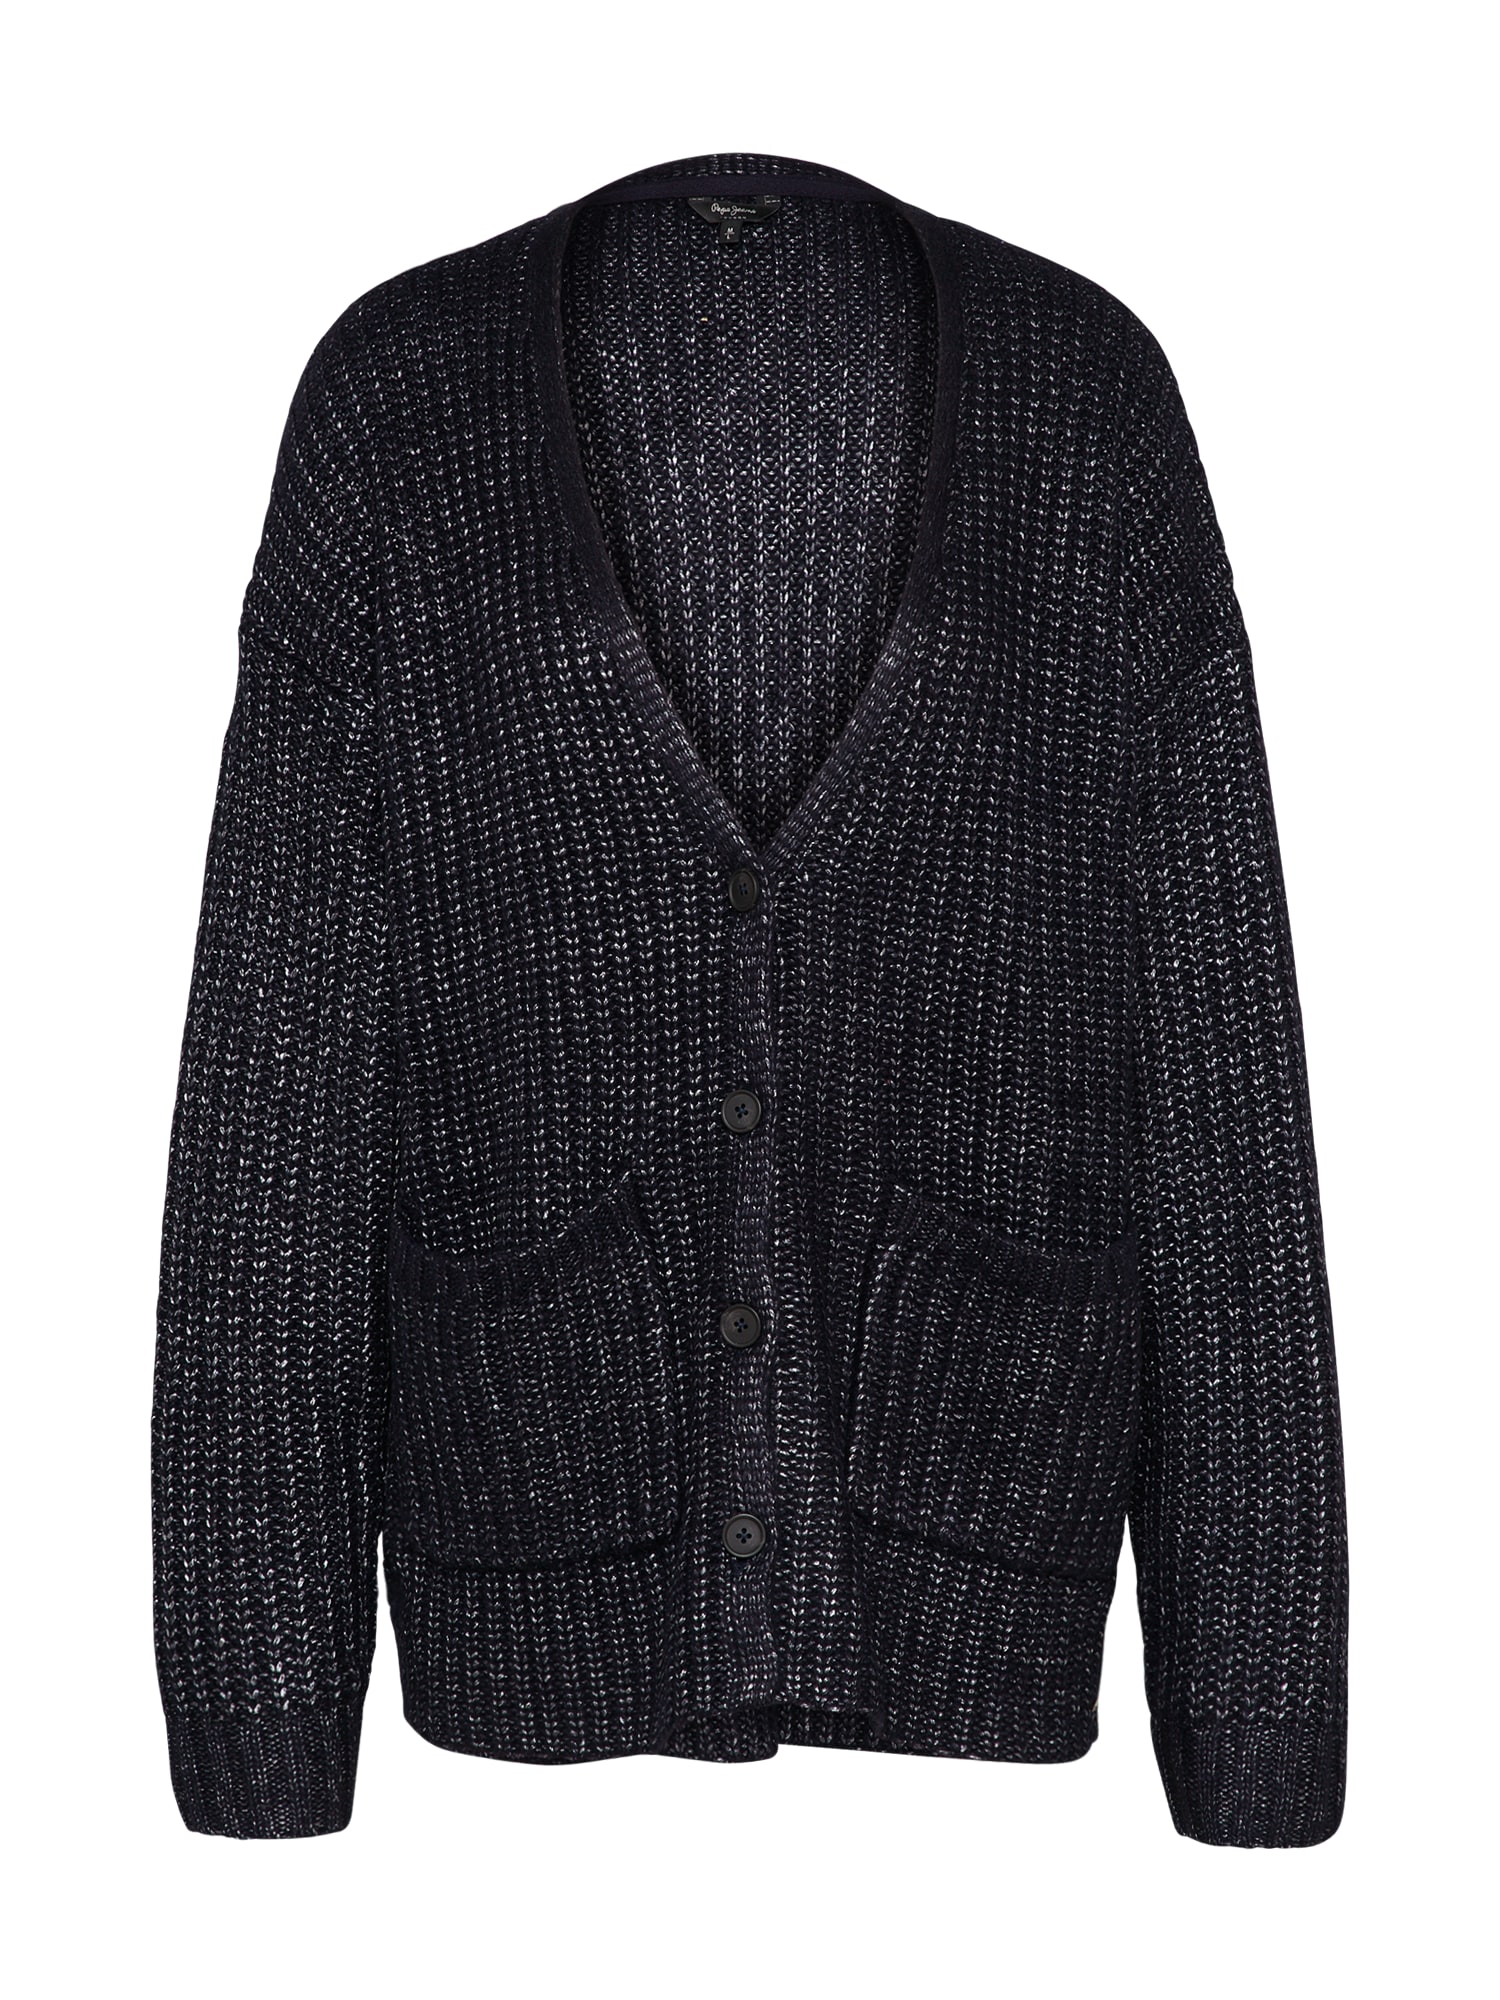 Pepe Jeans Dames Oversized vest ABBY donkerblauw